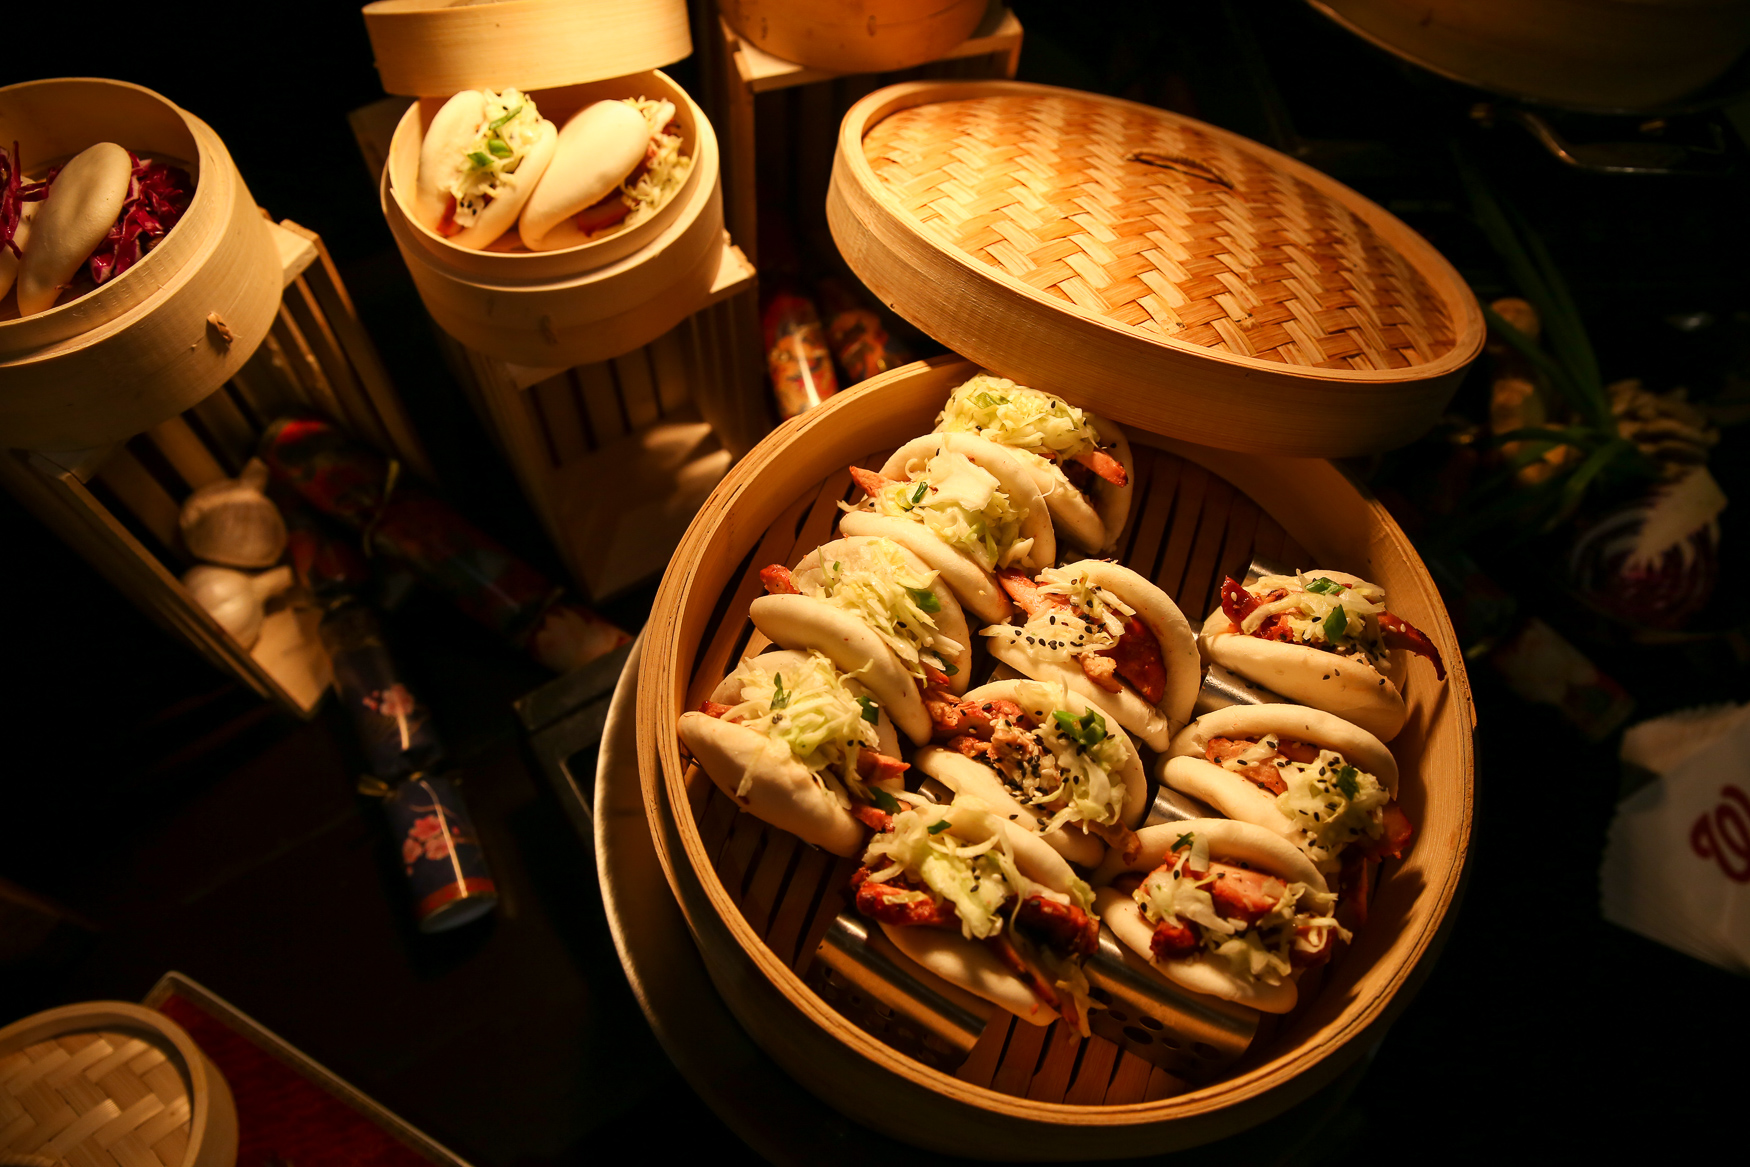 Bao Bao is another concept from the dining team at Nats Park and it features a variety of bao offerings, including vegetarian options. (Amanda Andrade-Rhoades/DC Refined)